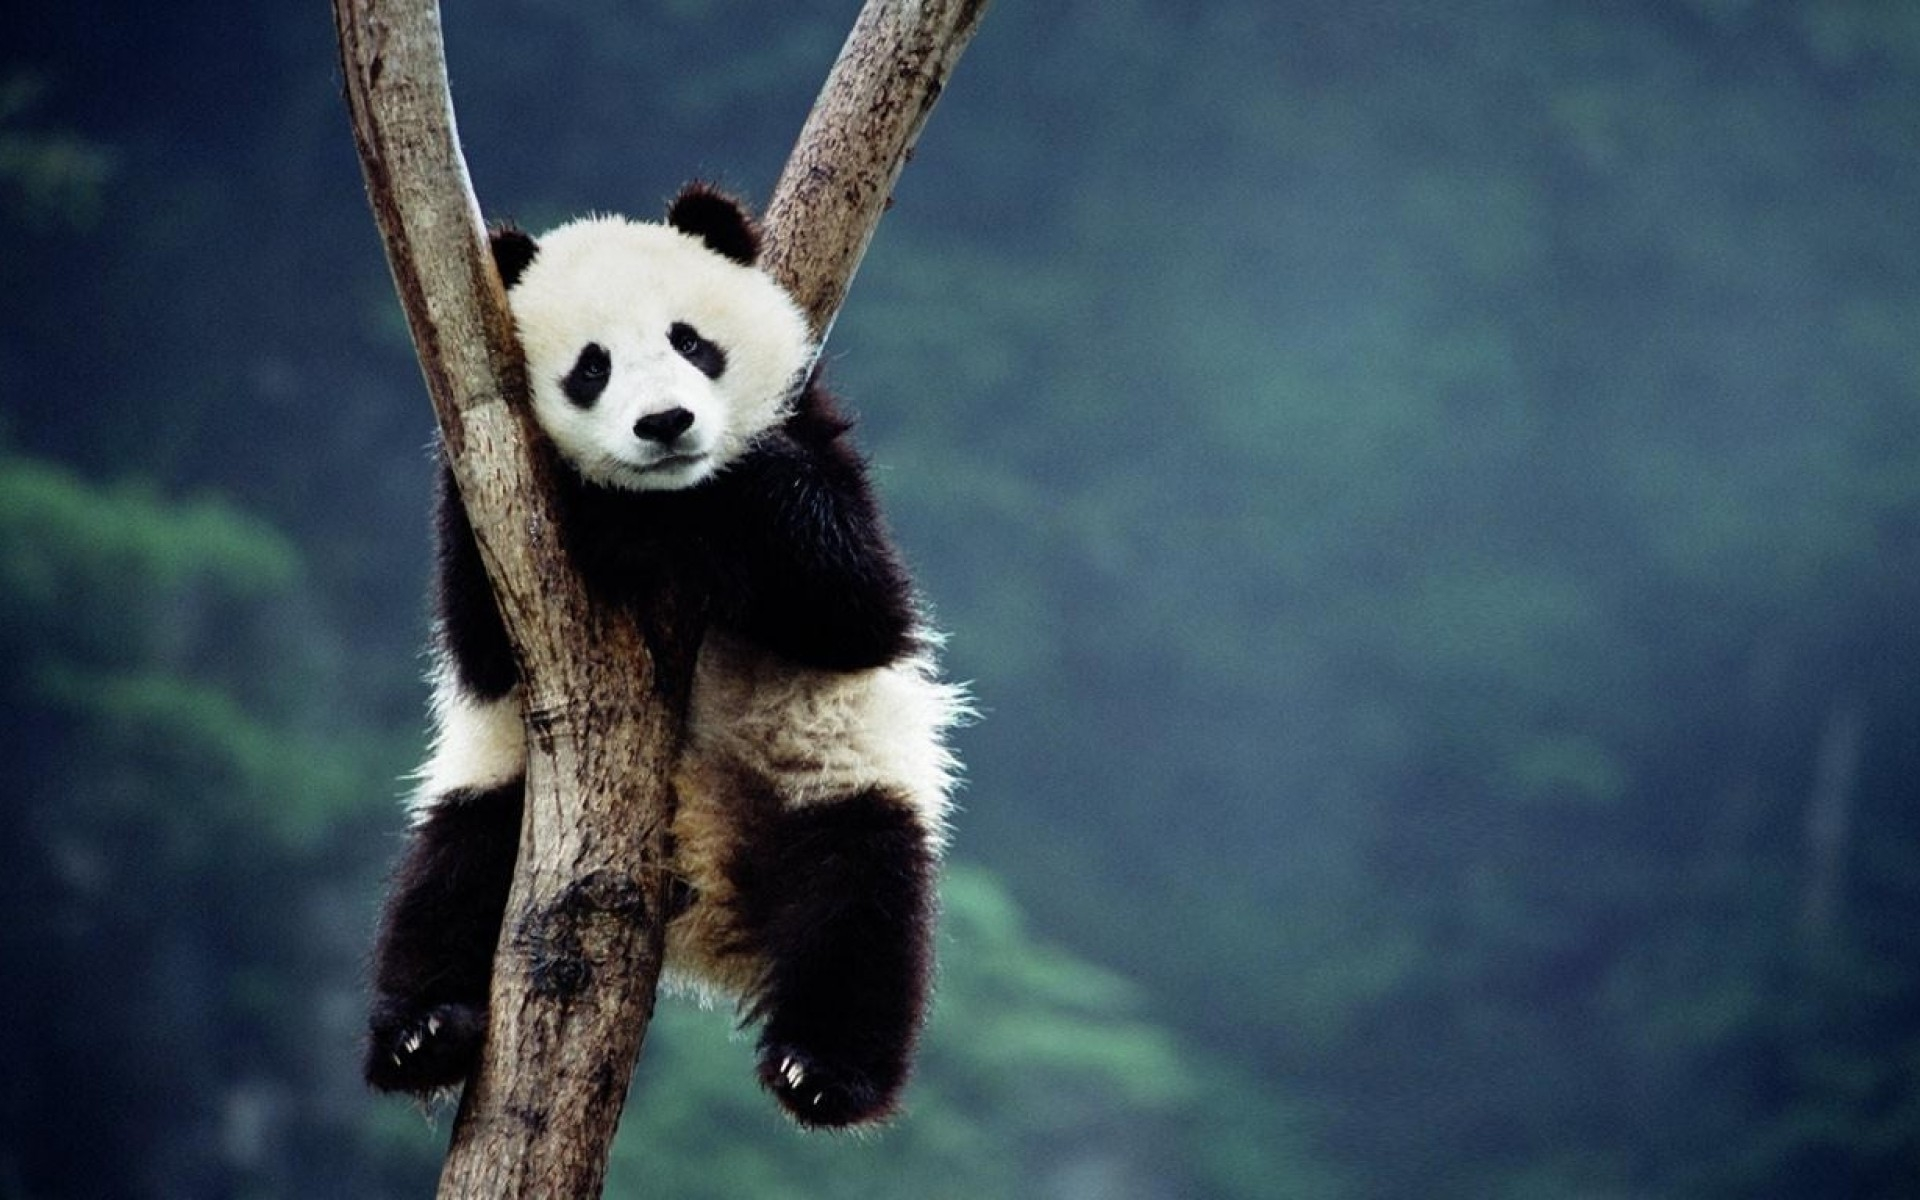 panda pictures hd wallpapers - photo #7